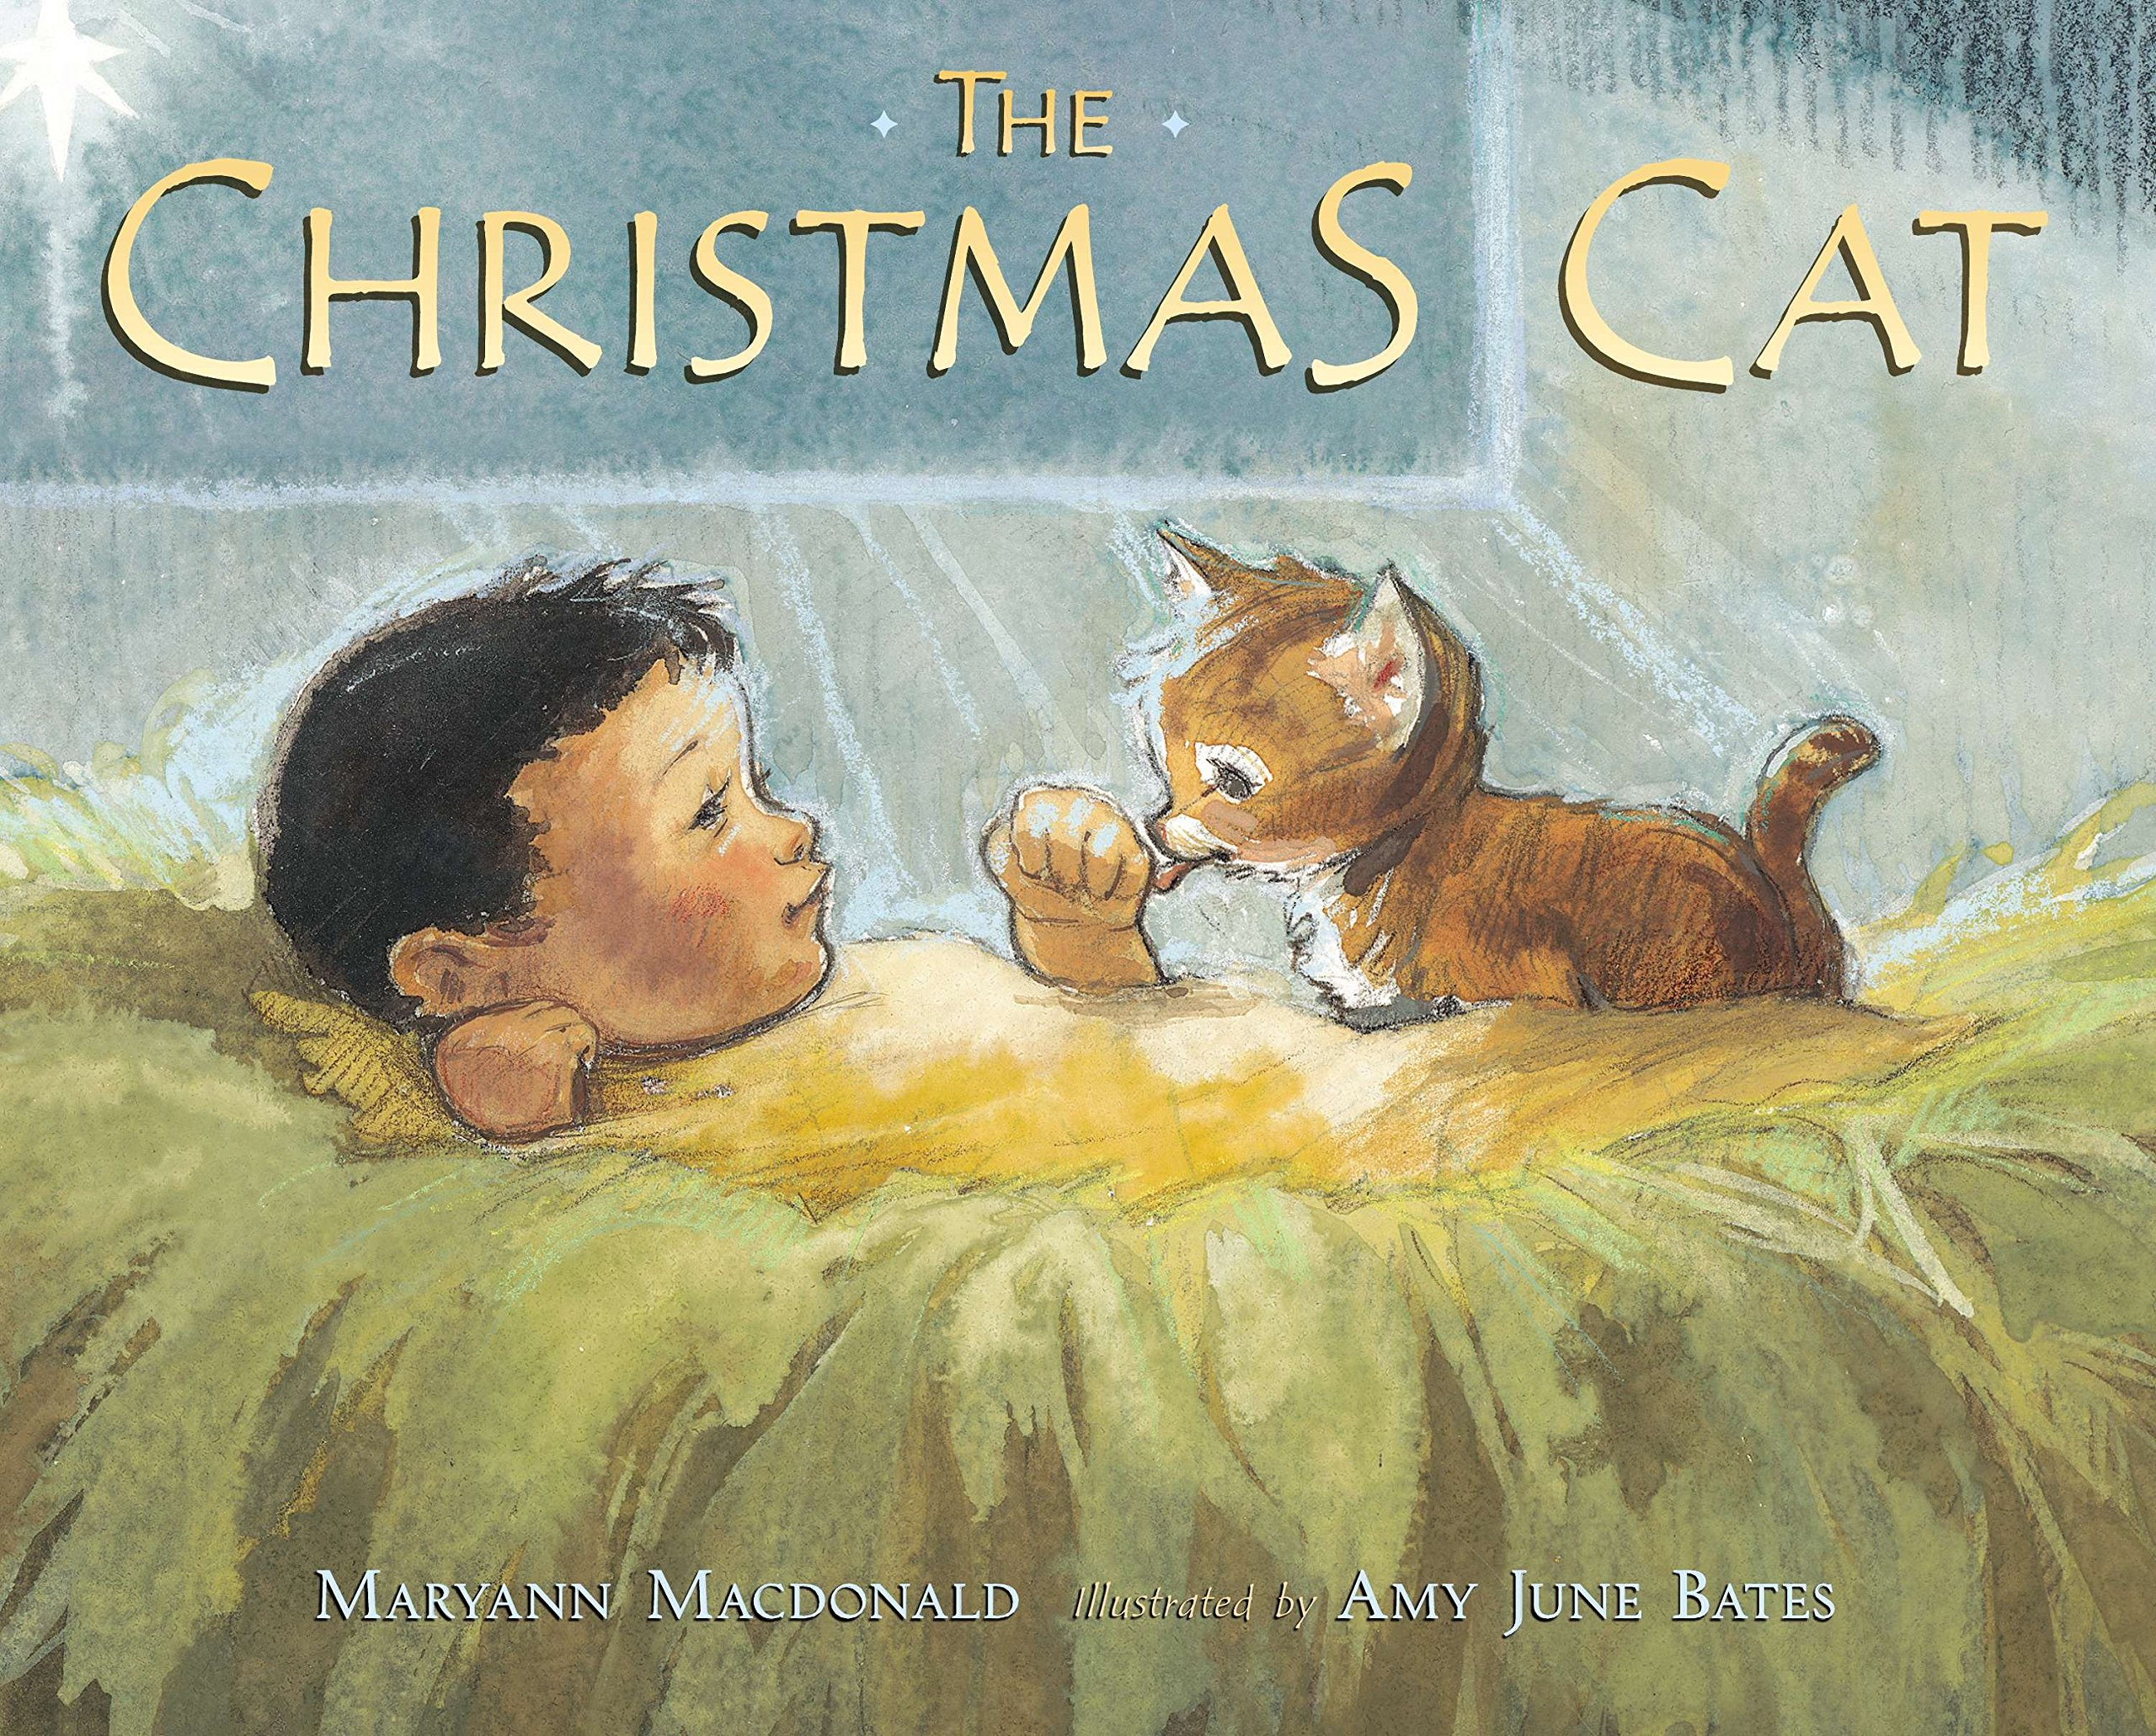 The Christmas Cat